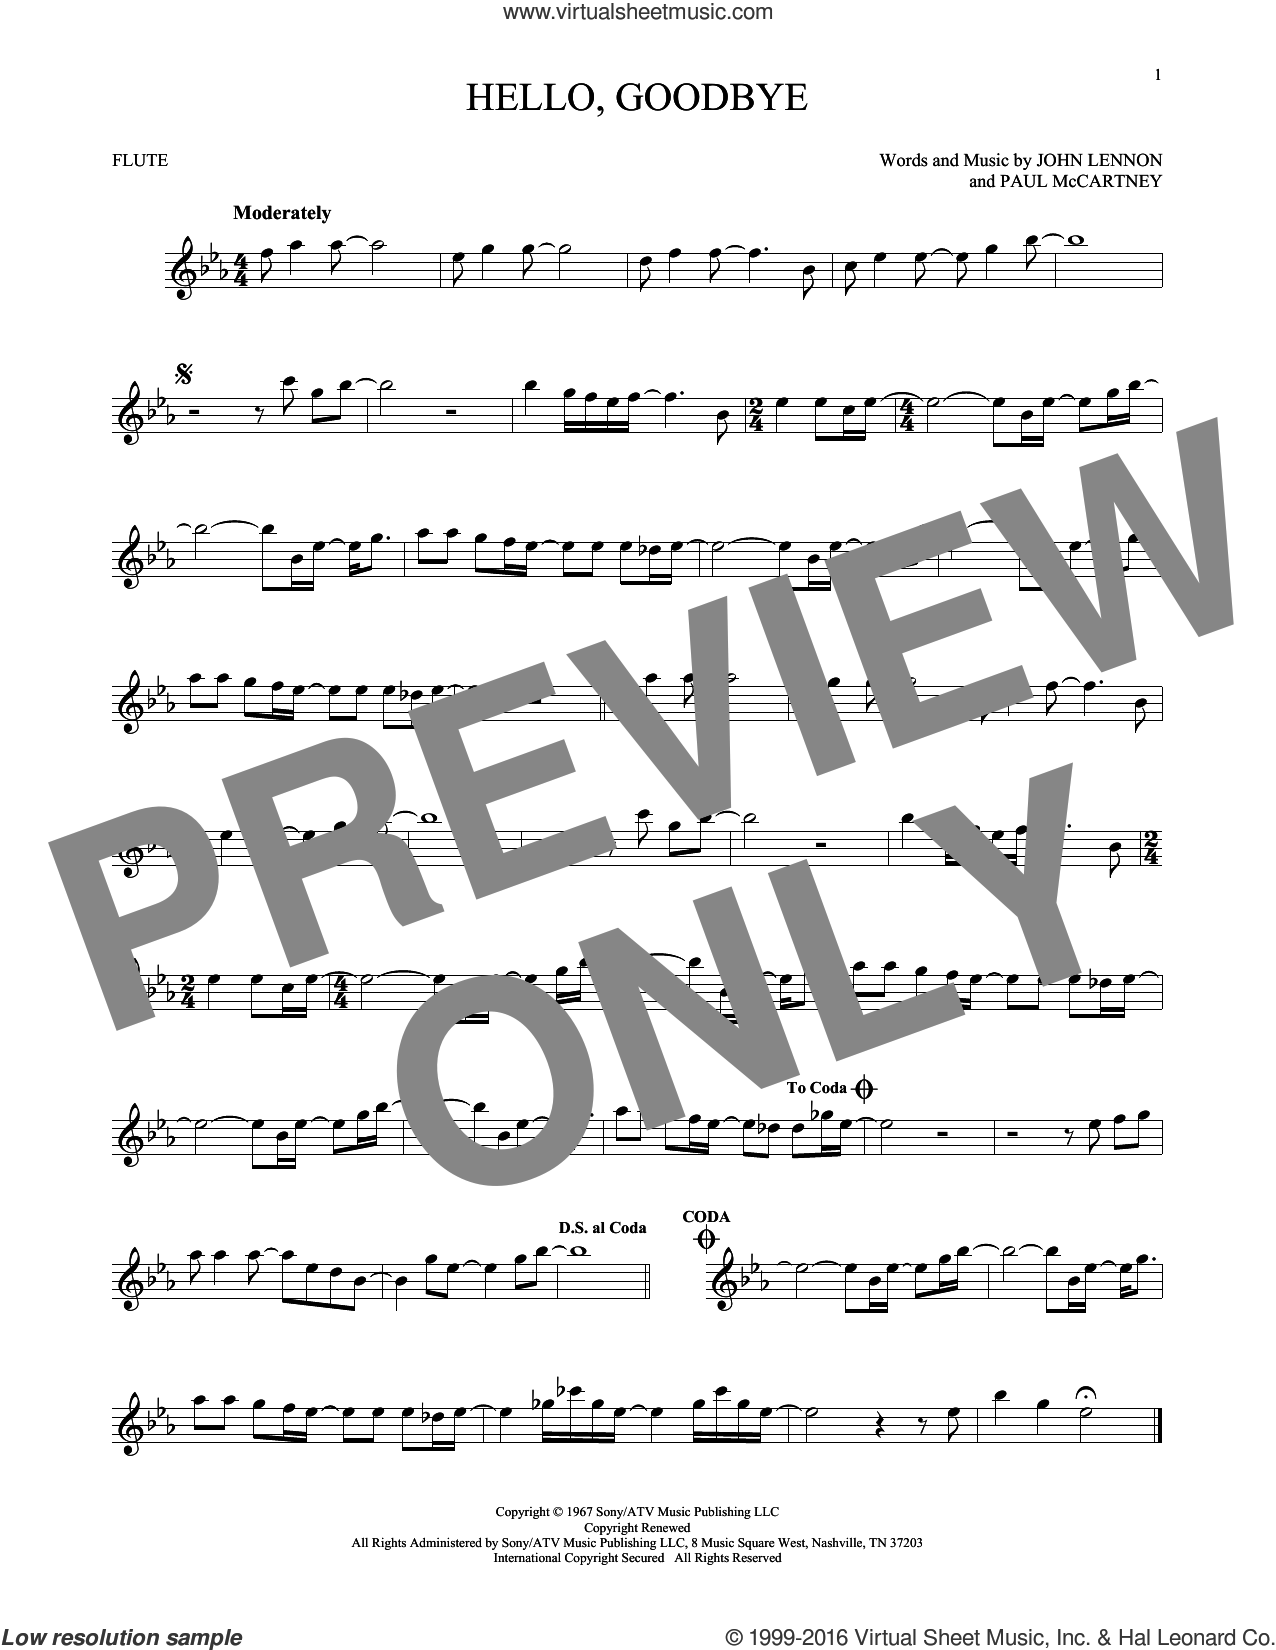 Hello, Goodbye sheet music for flute solo by The Beatles, John Lennon and Paul McCartney, intermediate skill level